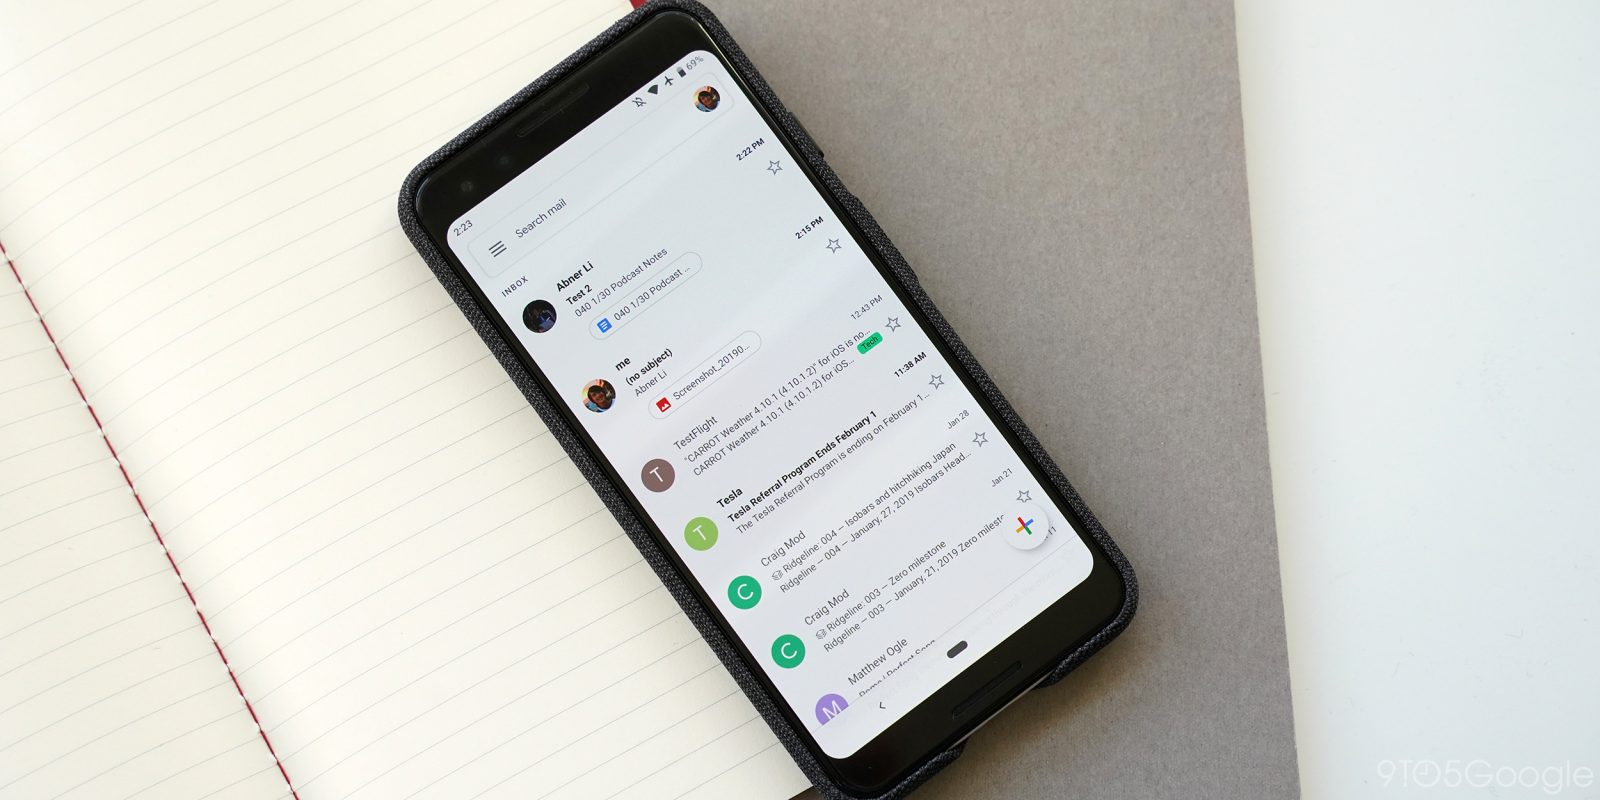 QnA VBage Gmail Conversation View now requires 'definite relationship' to thread emails